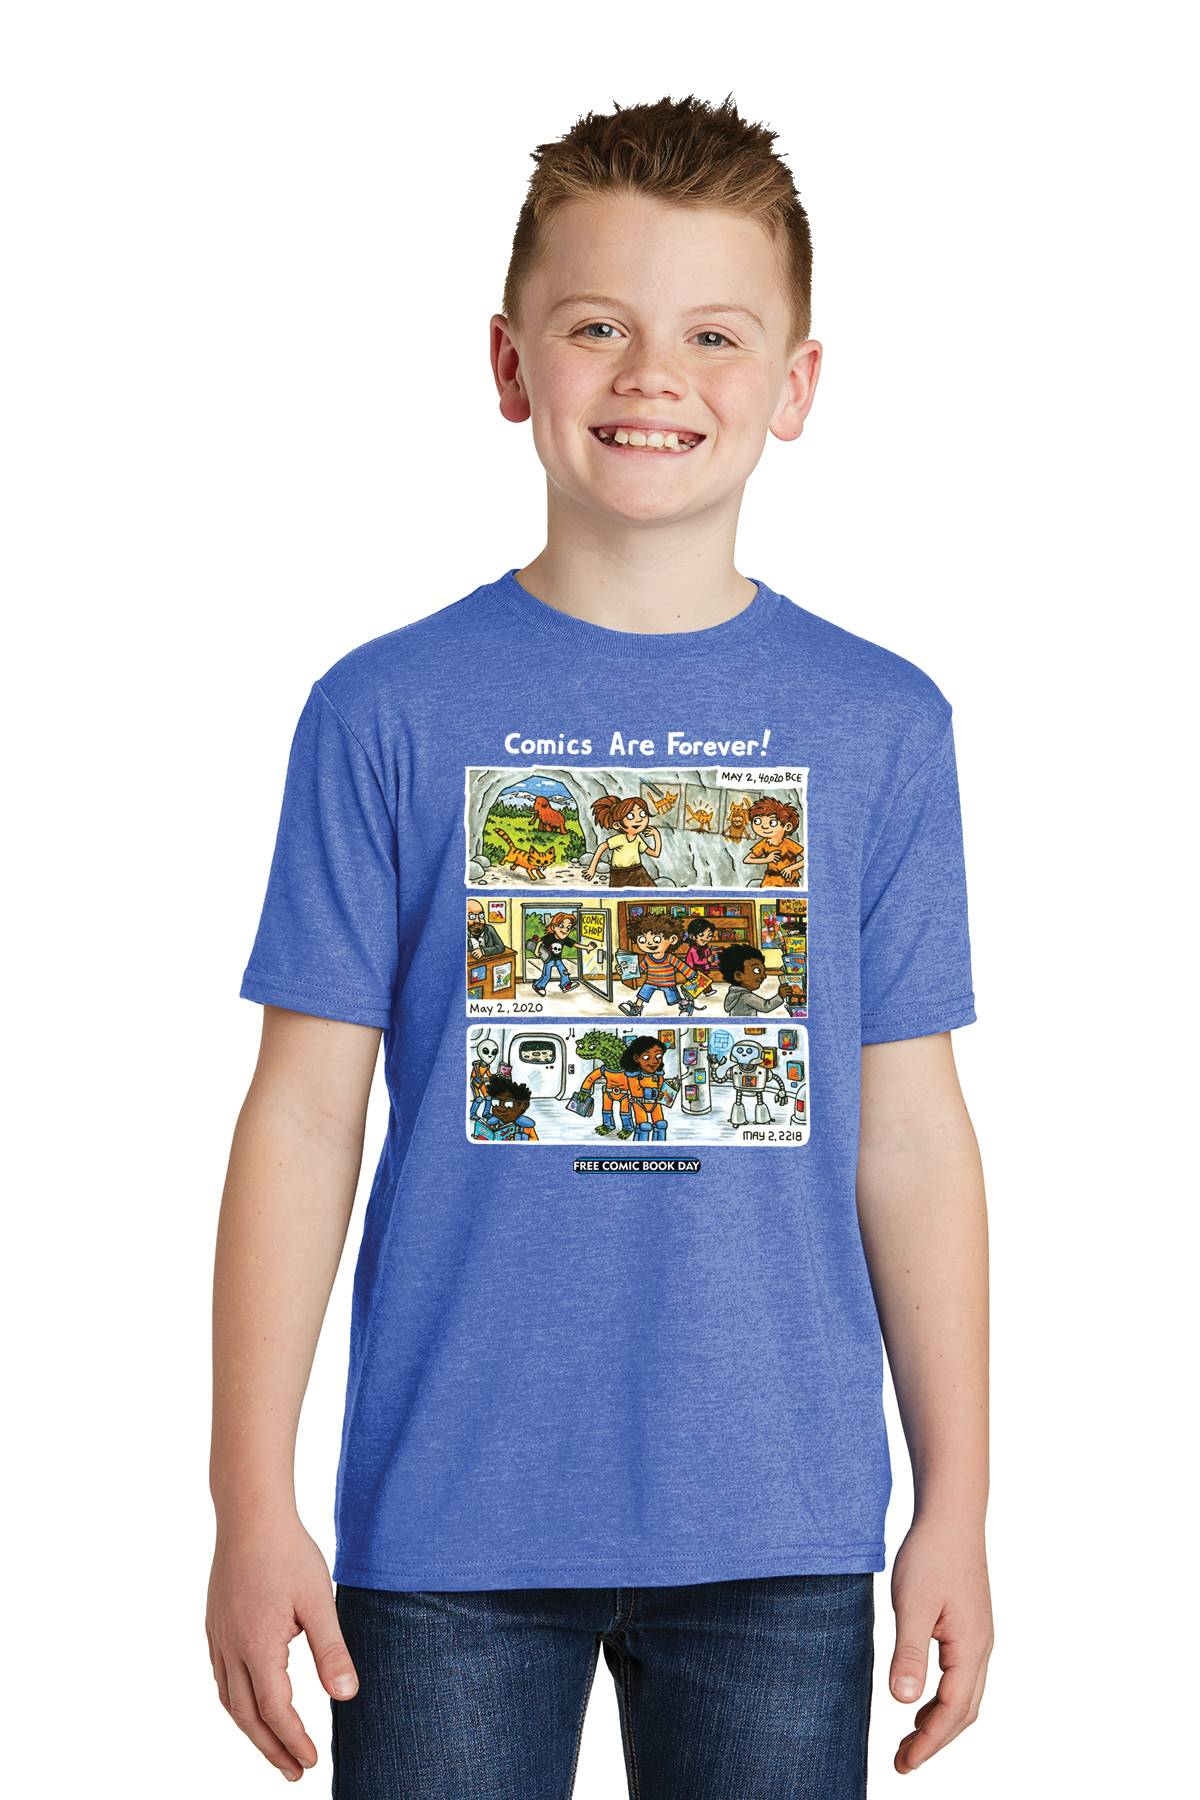 FCBD 2020 COMM ARTIST BROWN BLUE YOUTH T/S SM